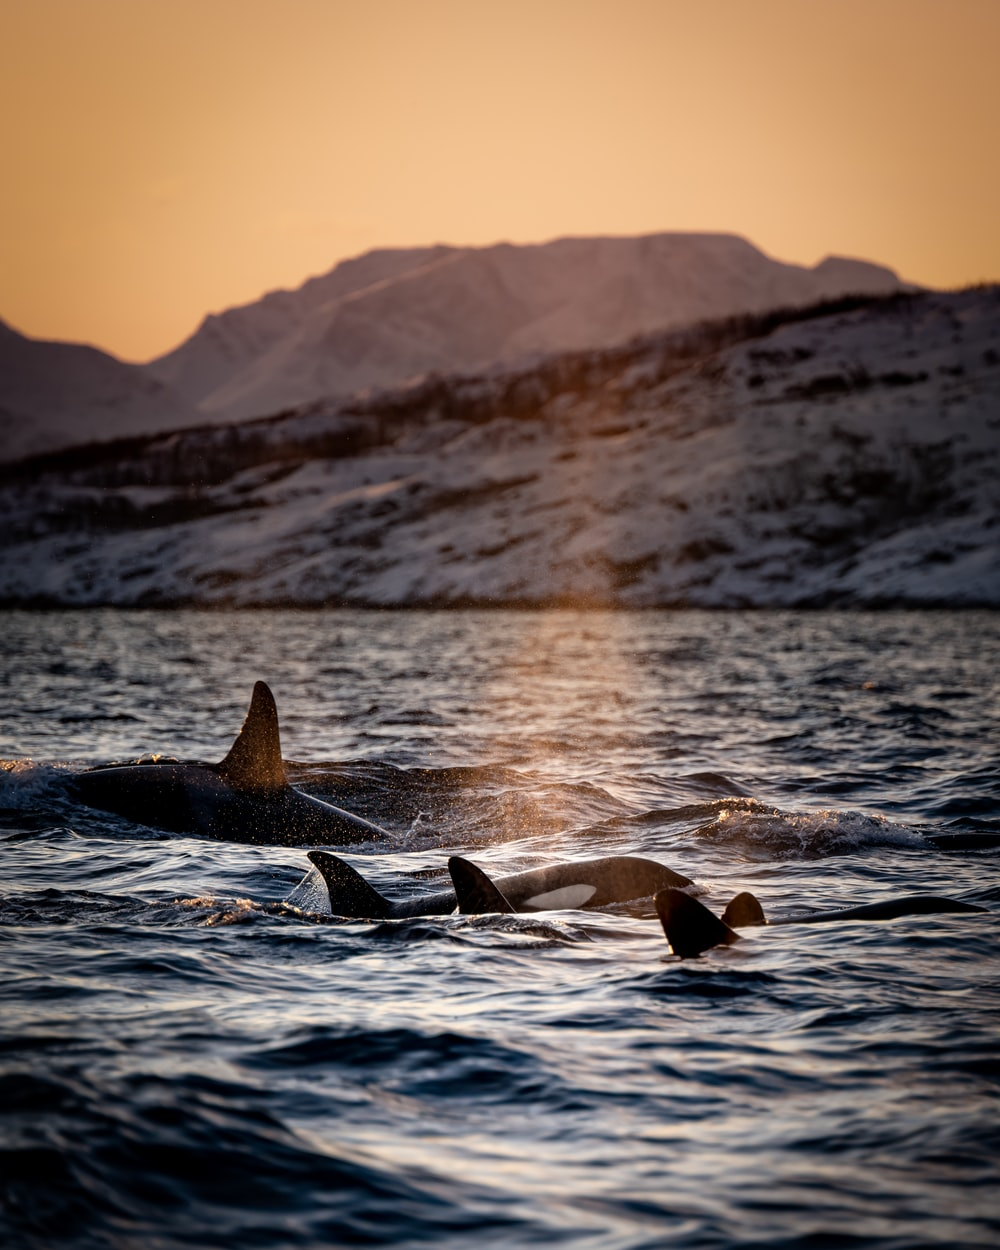 three killer whales floating on water